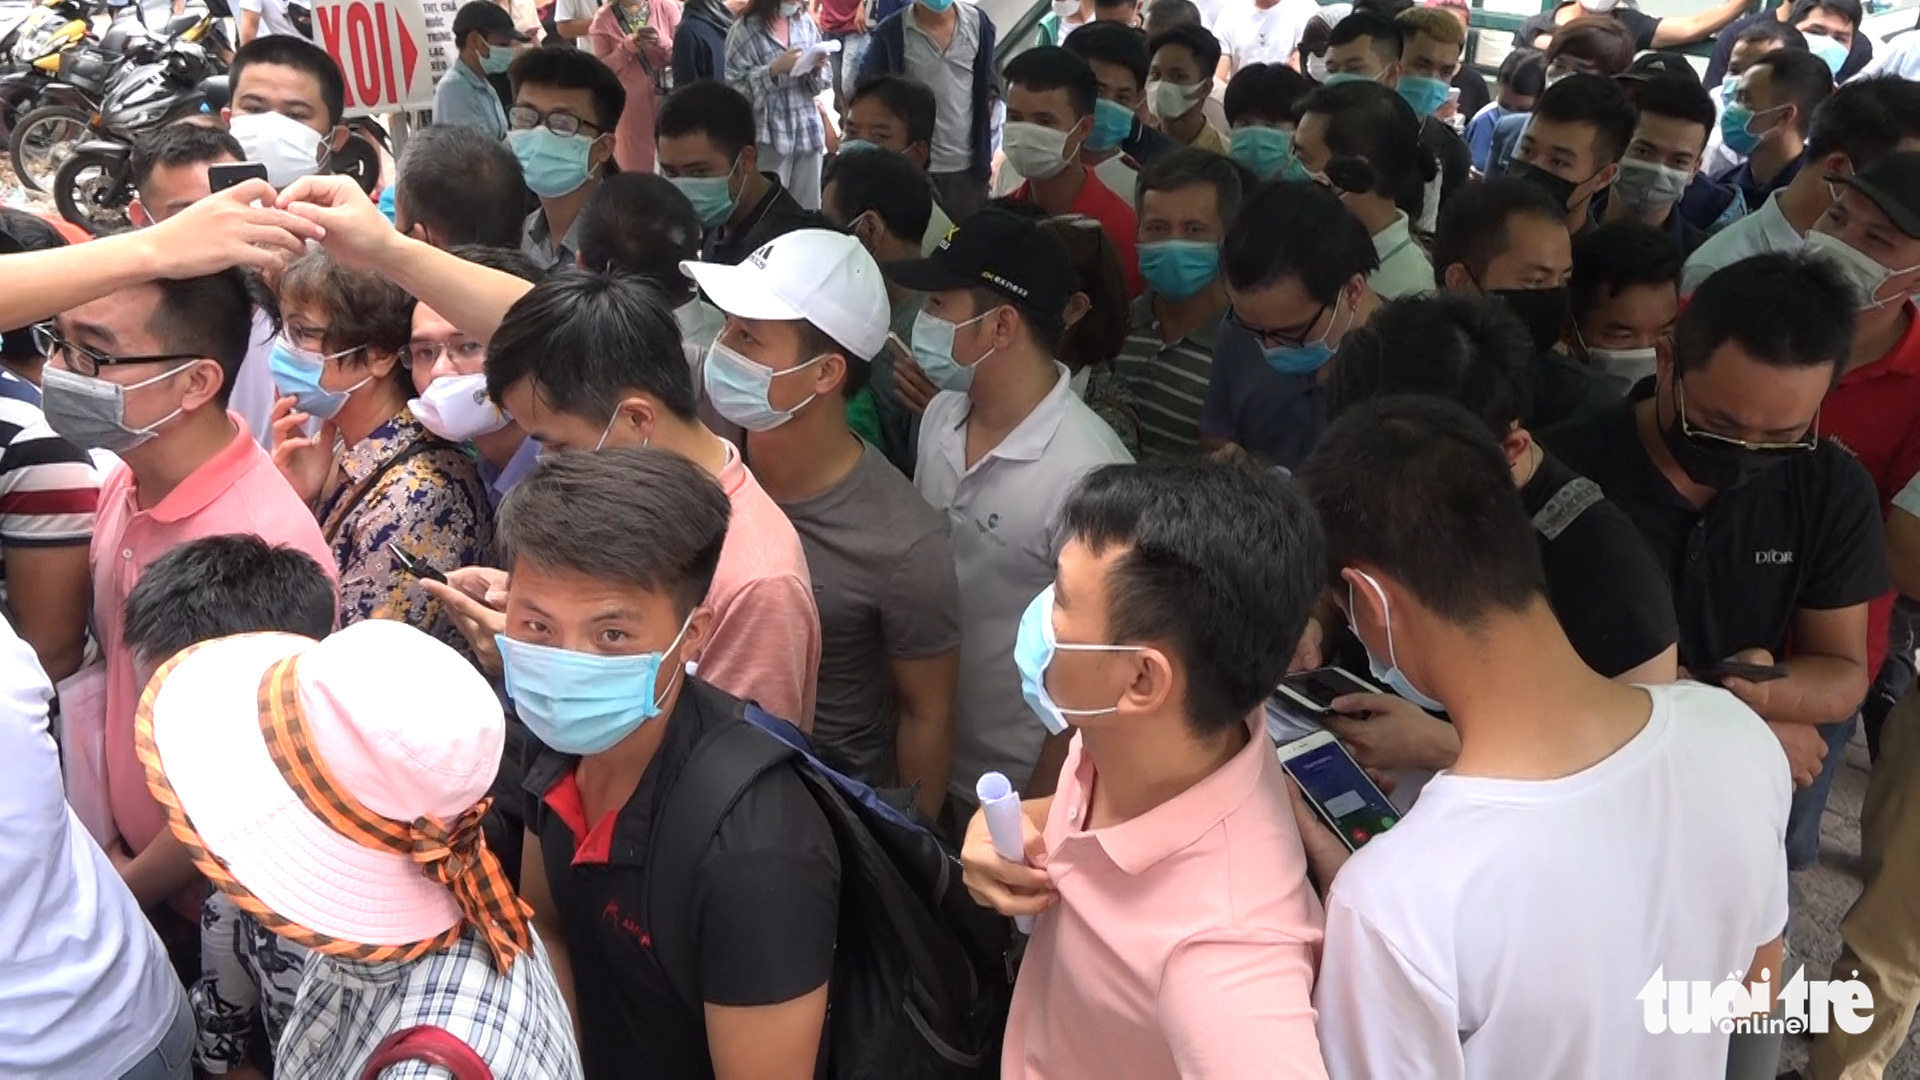 People pack COVID-19 test site in Hanoi despite gathering ban